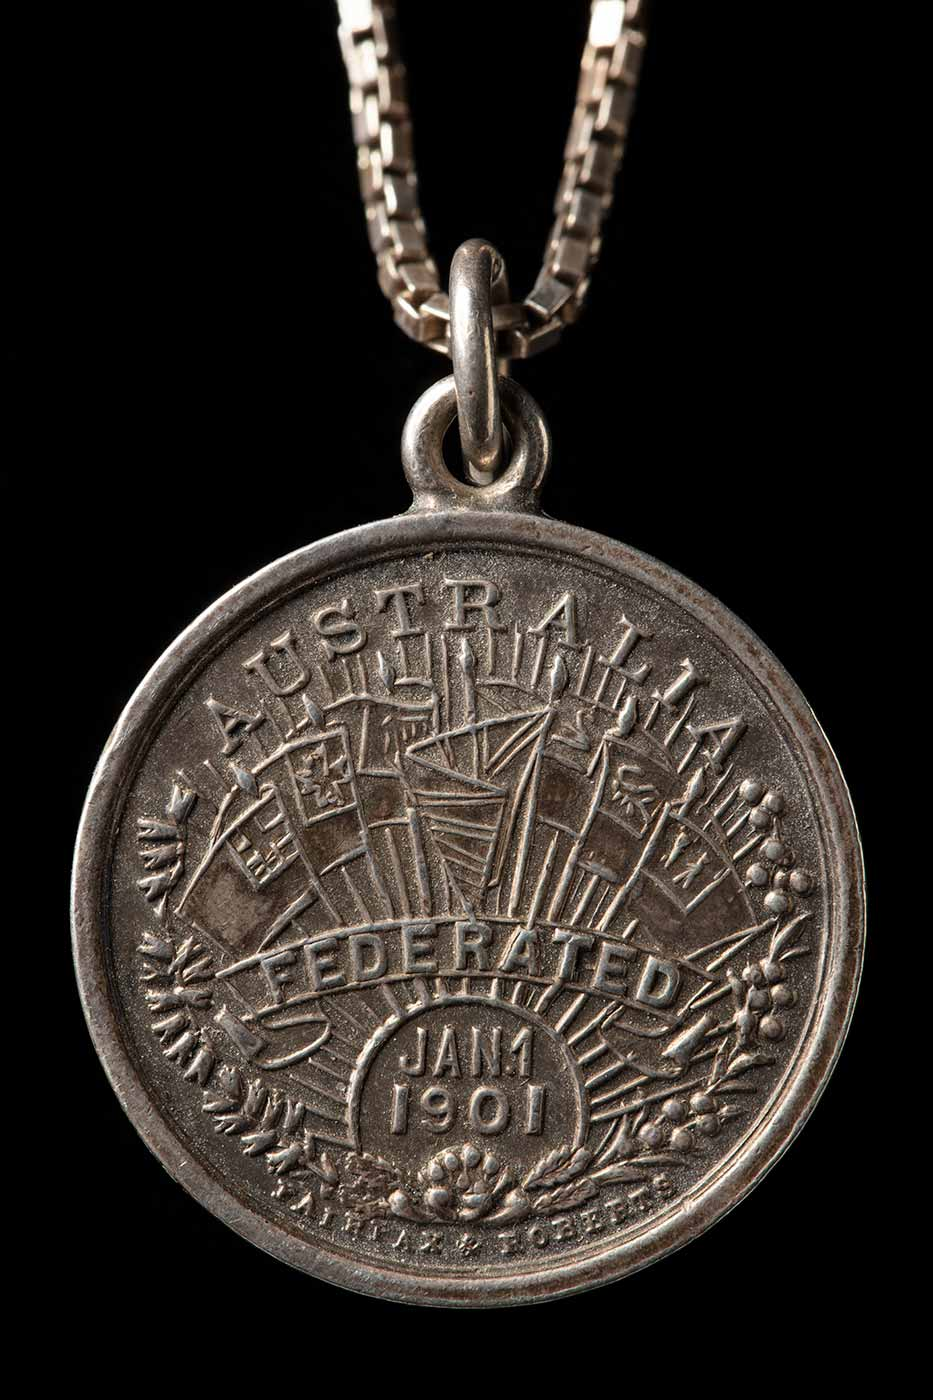 A silver circular double sided medal on a silver chain. The front face of the medal shows a display of flags set amongst the text 'AUSTRALIA / FEDERATED / JAN1 / 1901'. The scene is enclosed on the left by a bough of wheat and to the right by a branch of wattle. Below that is the embossed name 'FAIRFAX & ROBERT'. The reverse face of the medal shows two female figures exhanging items below a flying cherub or angel. The one on the right represents Britannia who holds out a scroll to the figure on the left. This female figure is holding a waratah flower and another scroll in her right hand and wears a flag of stars as a skirt. - click to view larger image